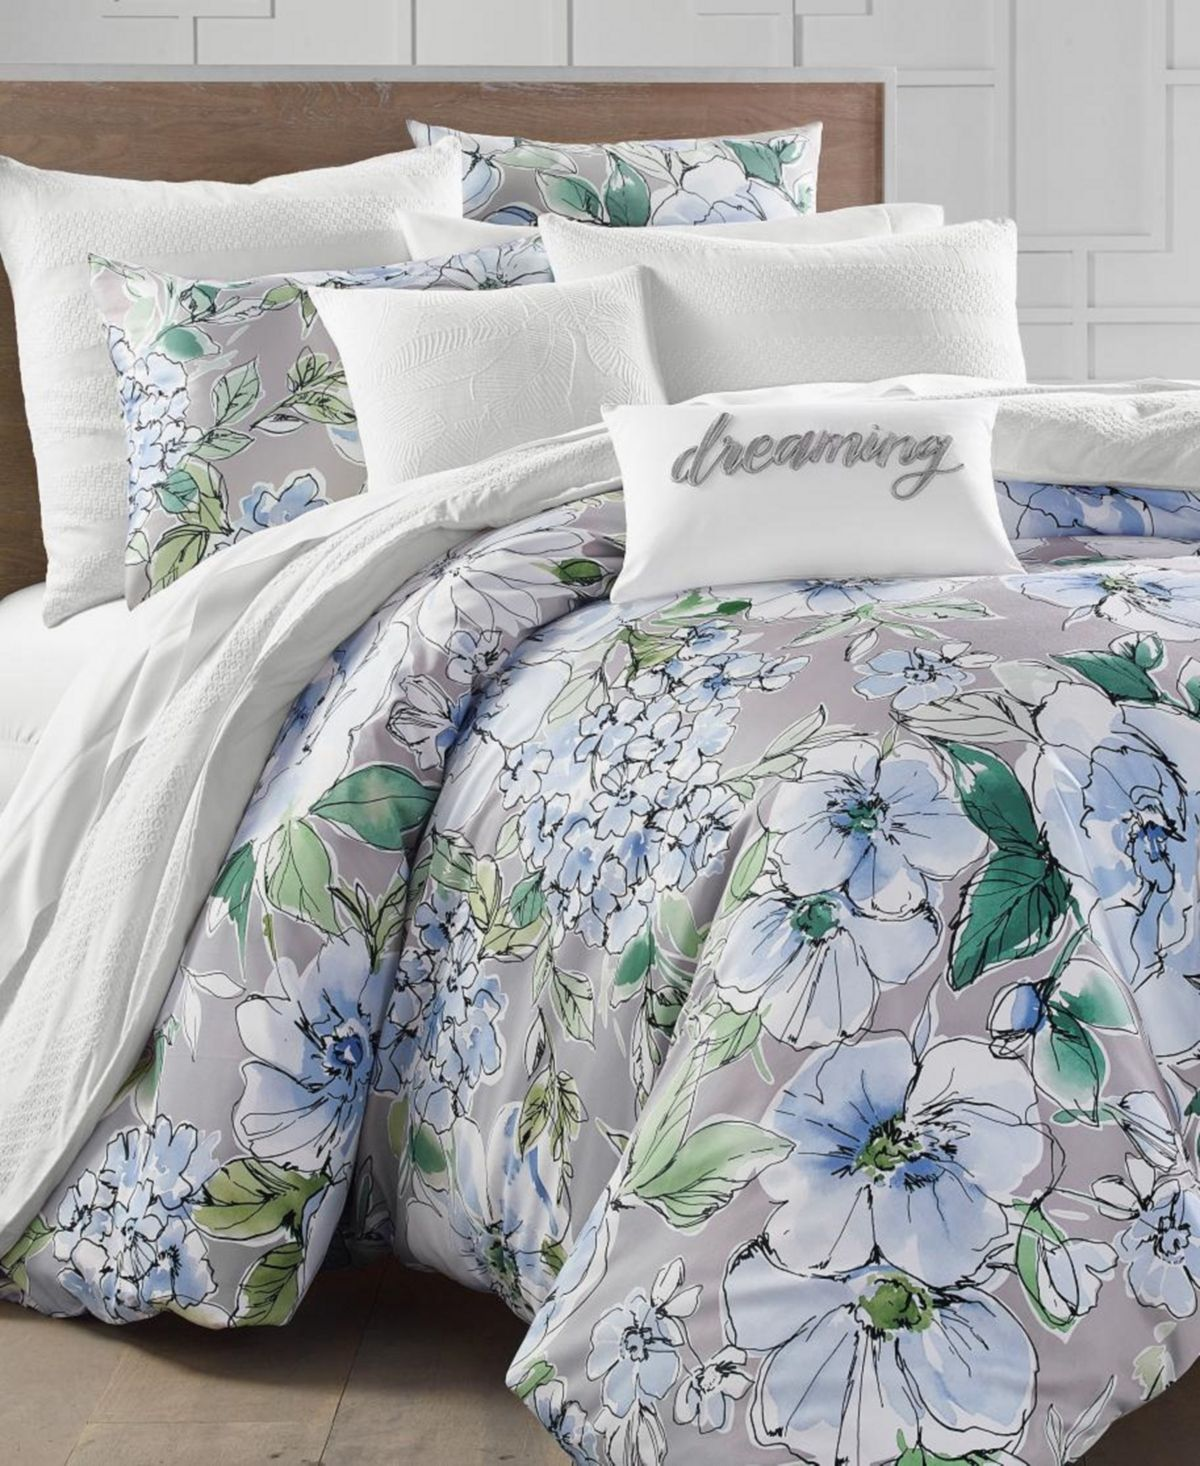 Charter Club Floral Blooms 300 Thread Count King Duvet Set Created For Macy S Reviews Covers Sets Bed Bath Queen Comforter